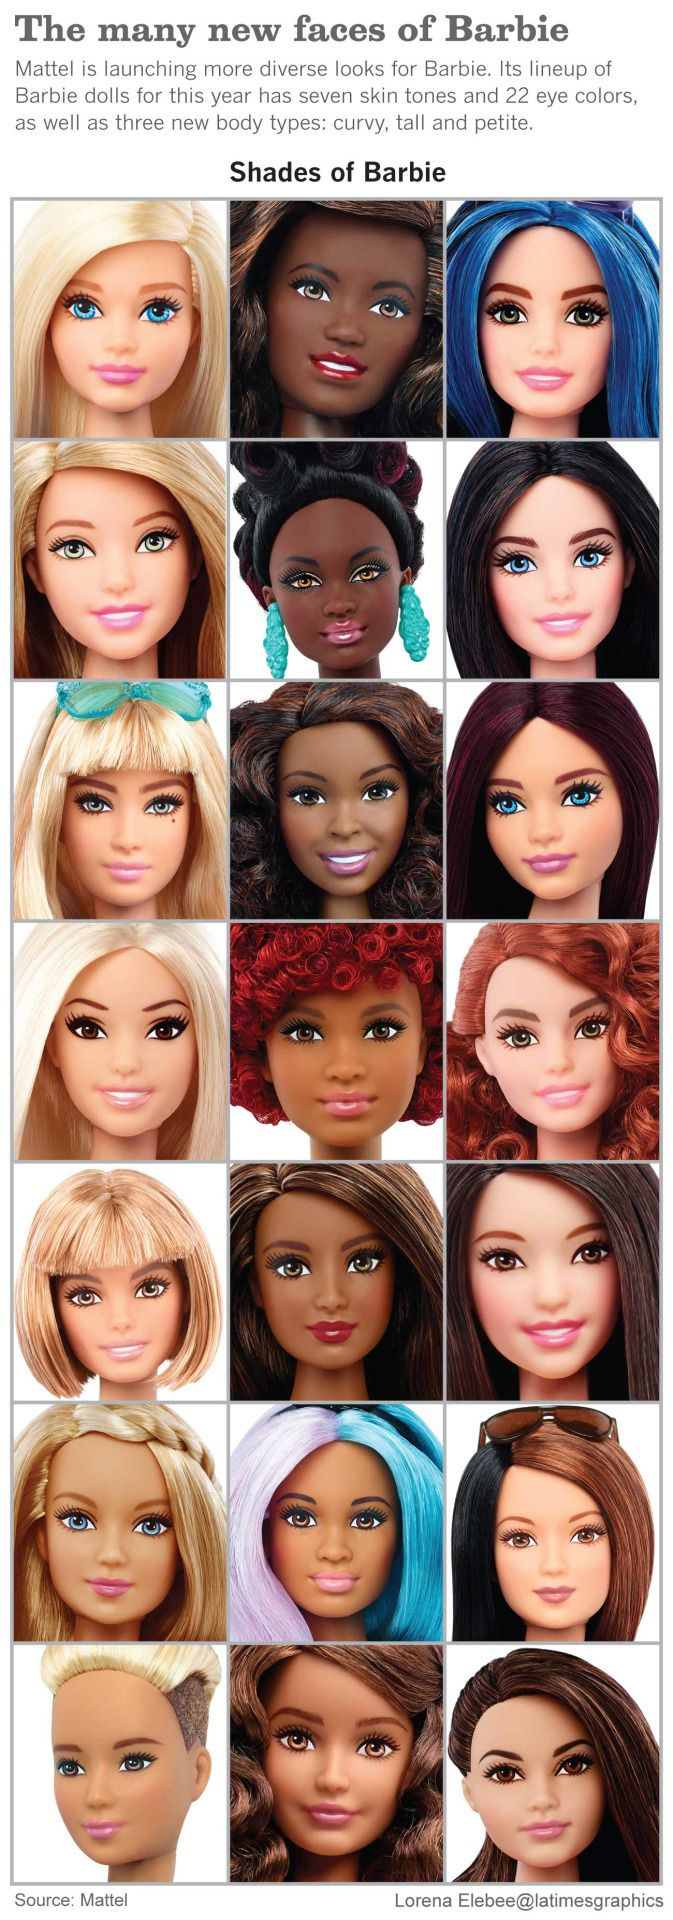 I want a curvy Barbie and she better have some clothes to go along with that new shape